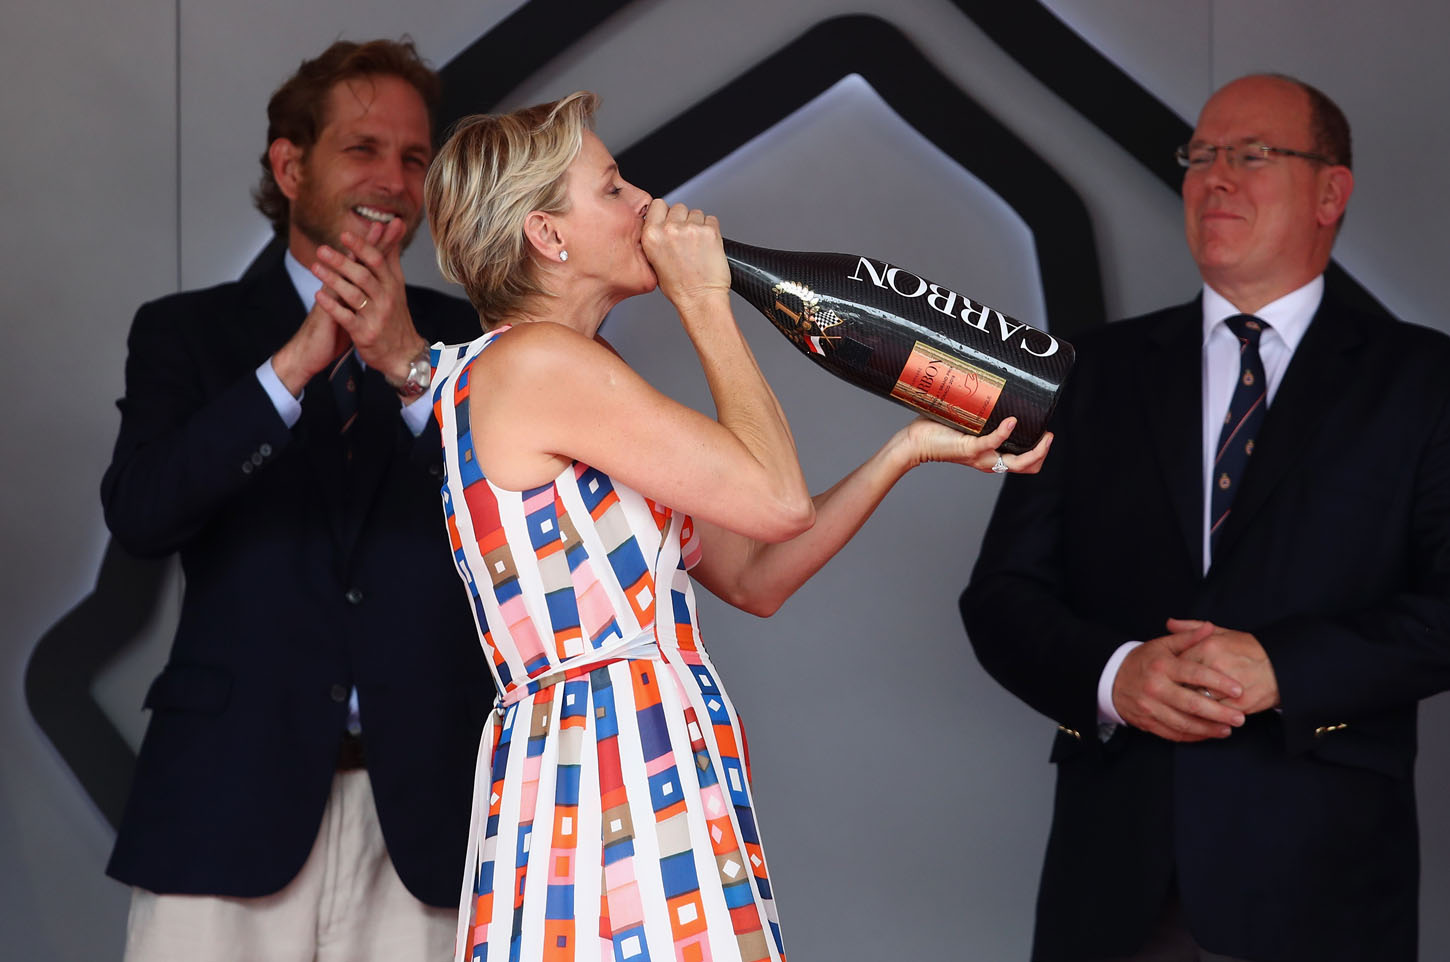 MONTE-CARLO, MONACO - MAY 27:  Princess Charlene of Monaco drinks the winner champagne on the podium during the Monaco Formula One Grand Prix at Circuit de Monaco on May 27, 2018 in Monte-Carlo, Monaco.  (Photo by Mark Thompson/Getty Images)